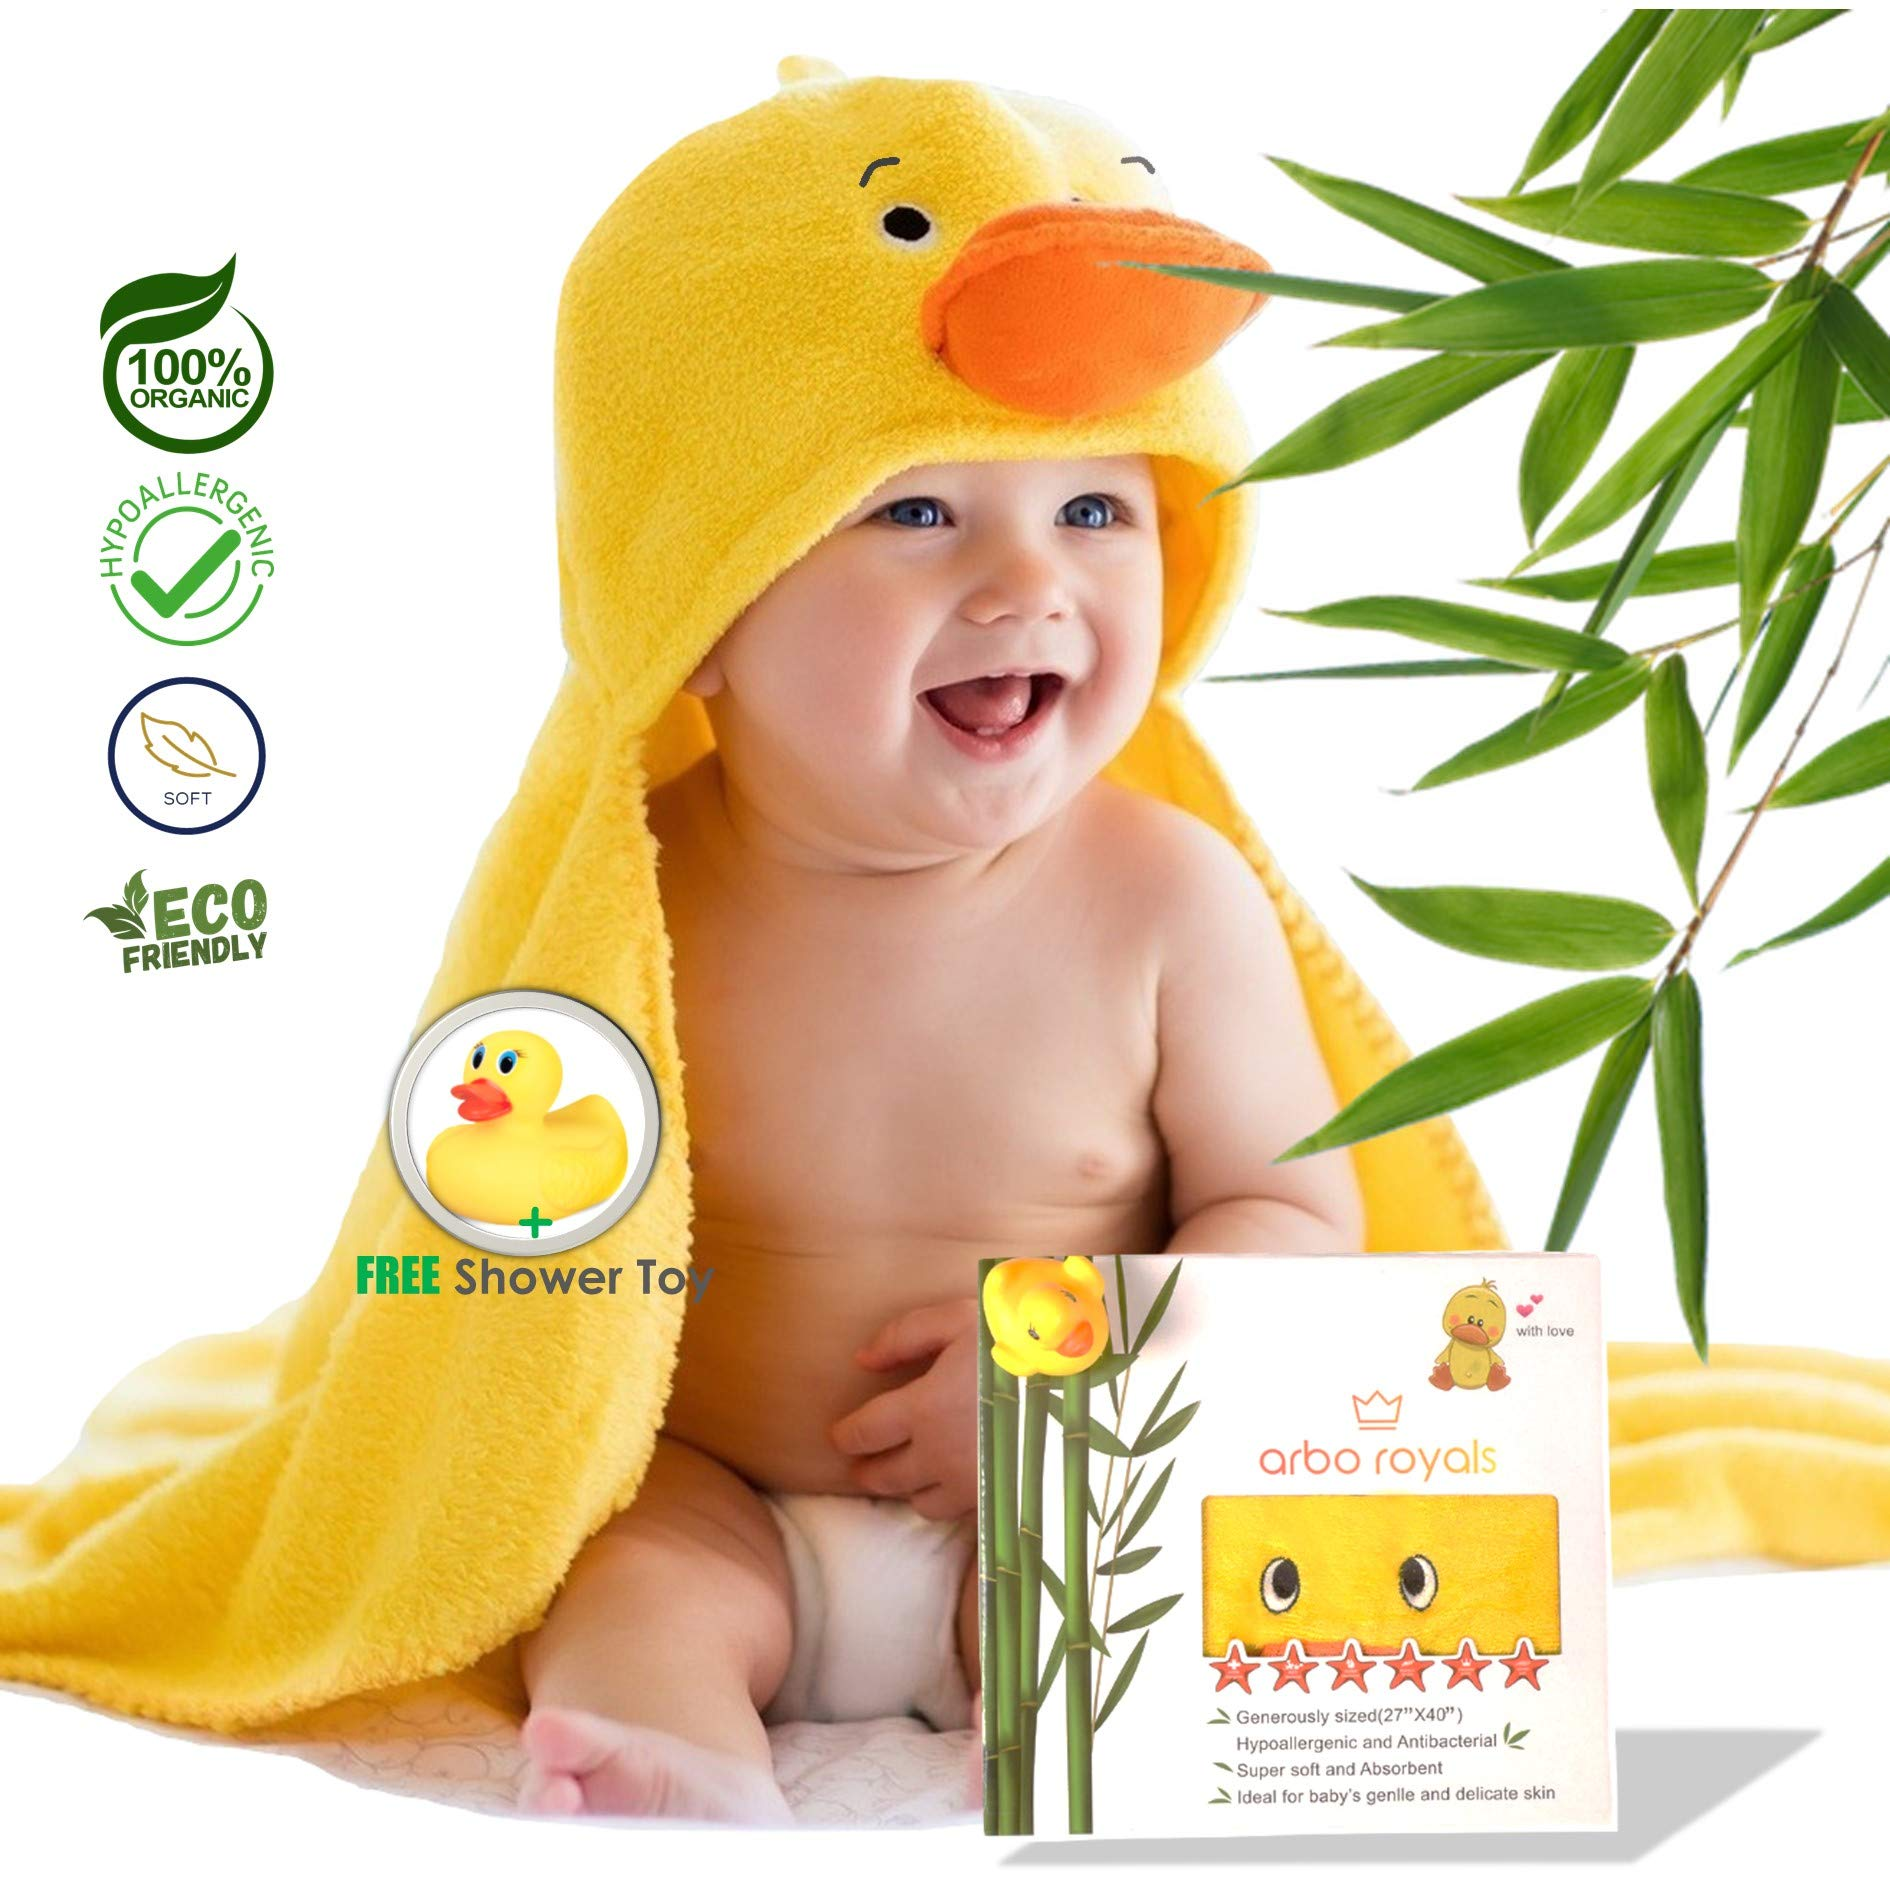 Premium Baby Hooded Towel 100% Soft Organic Bamboo Baby Bath Towels for Kids, Toddlers, Infants, for Boys and Girls | Newborn Baby Wrap Towel | Best Baby Shower Gift Ideas with Free Duck Shower Toy by Arbo Royals